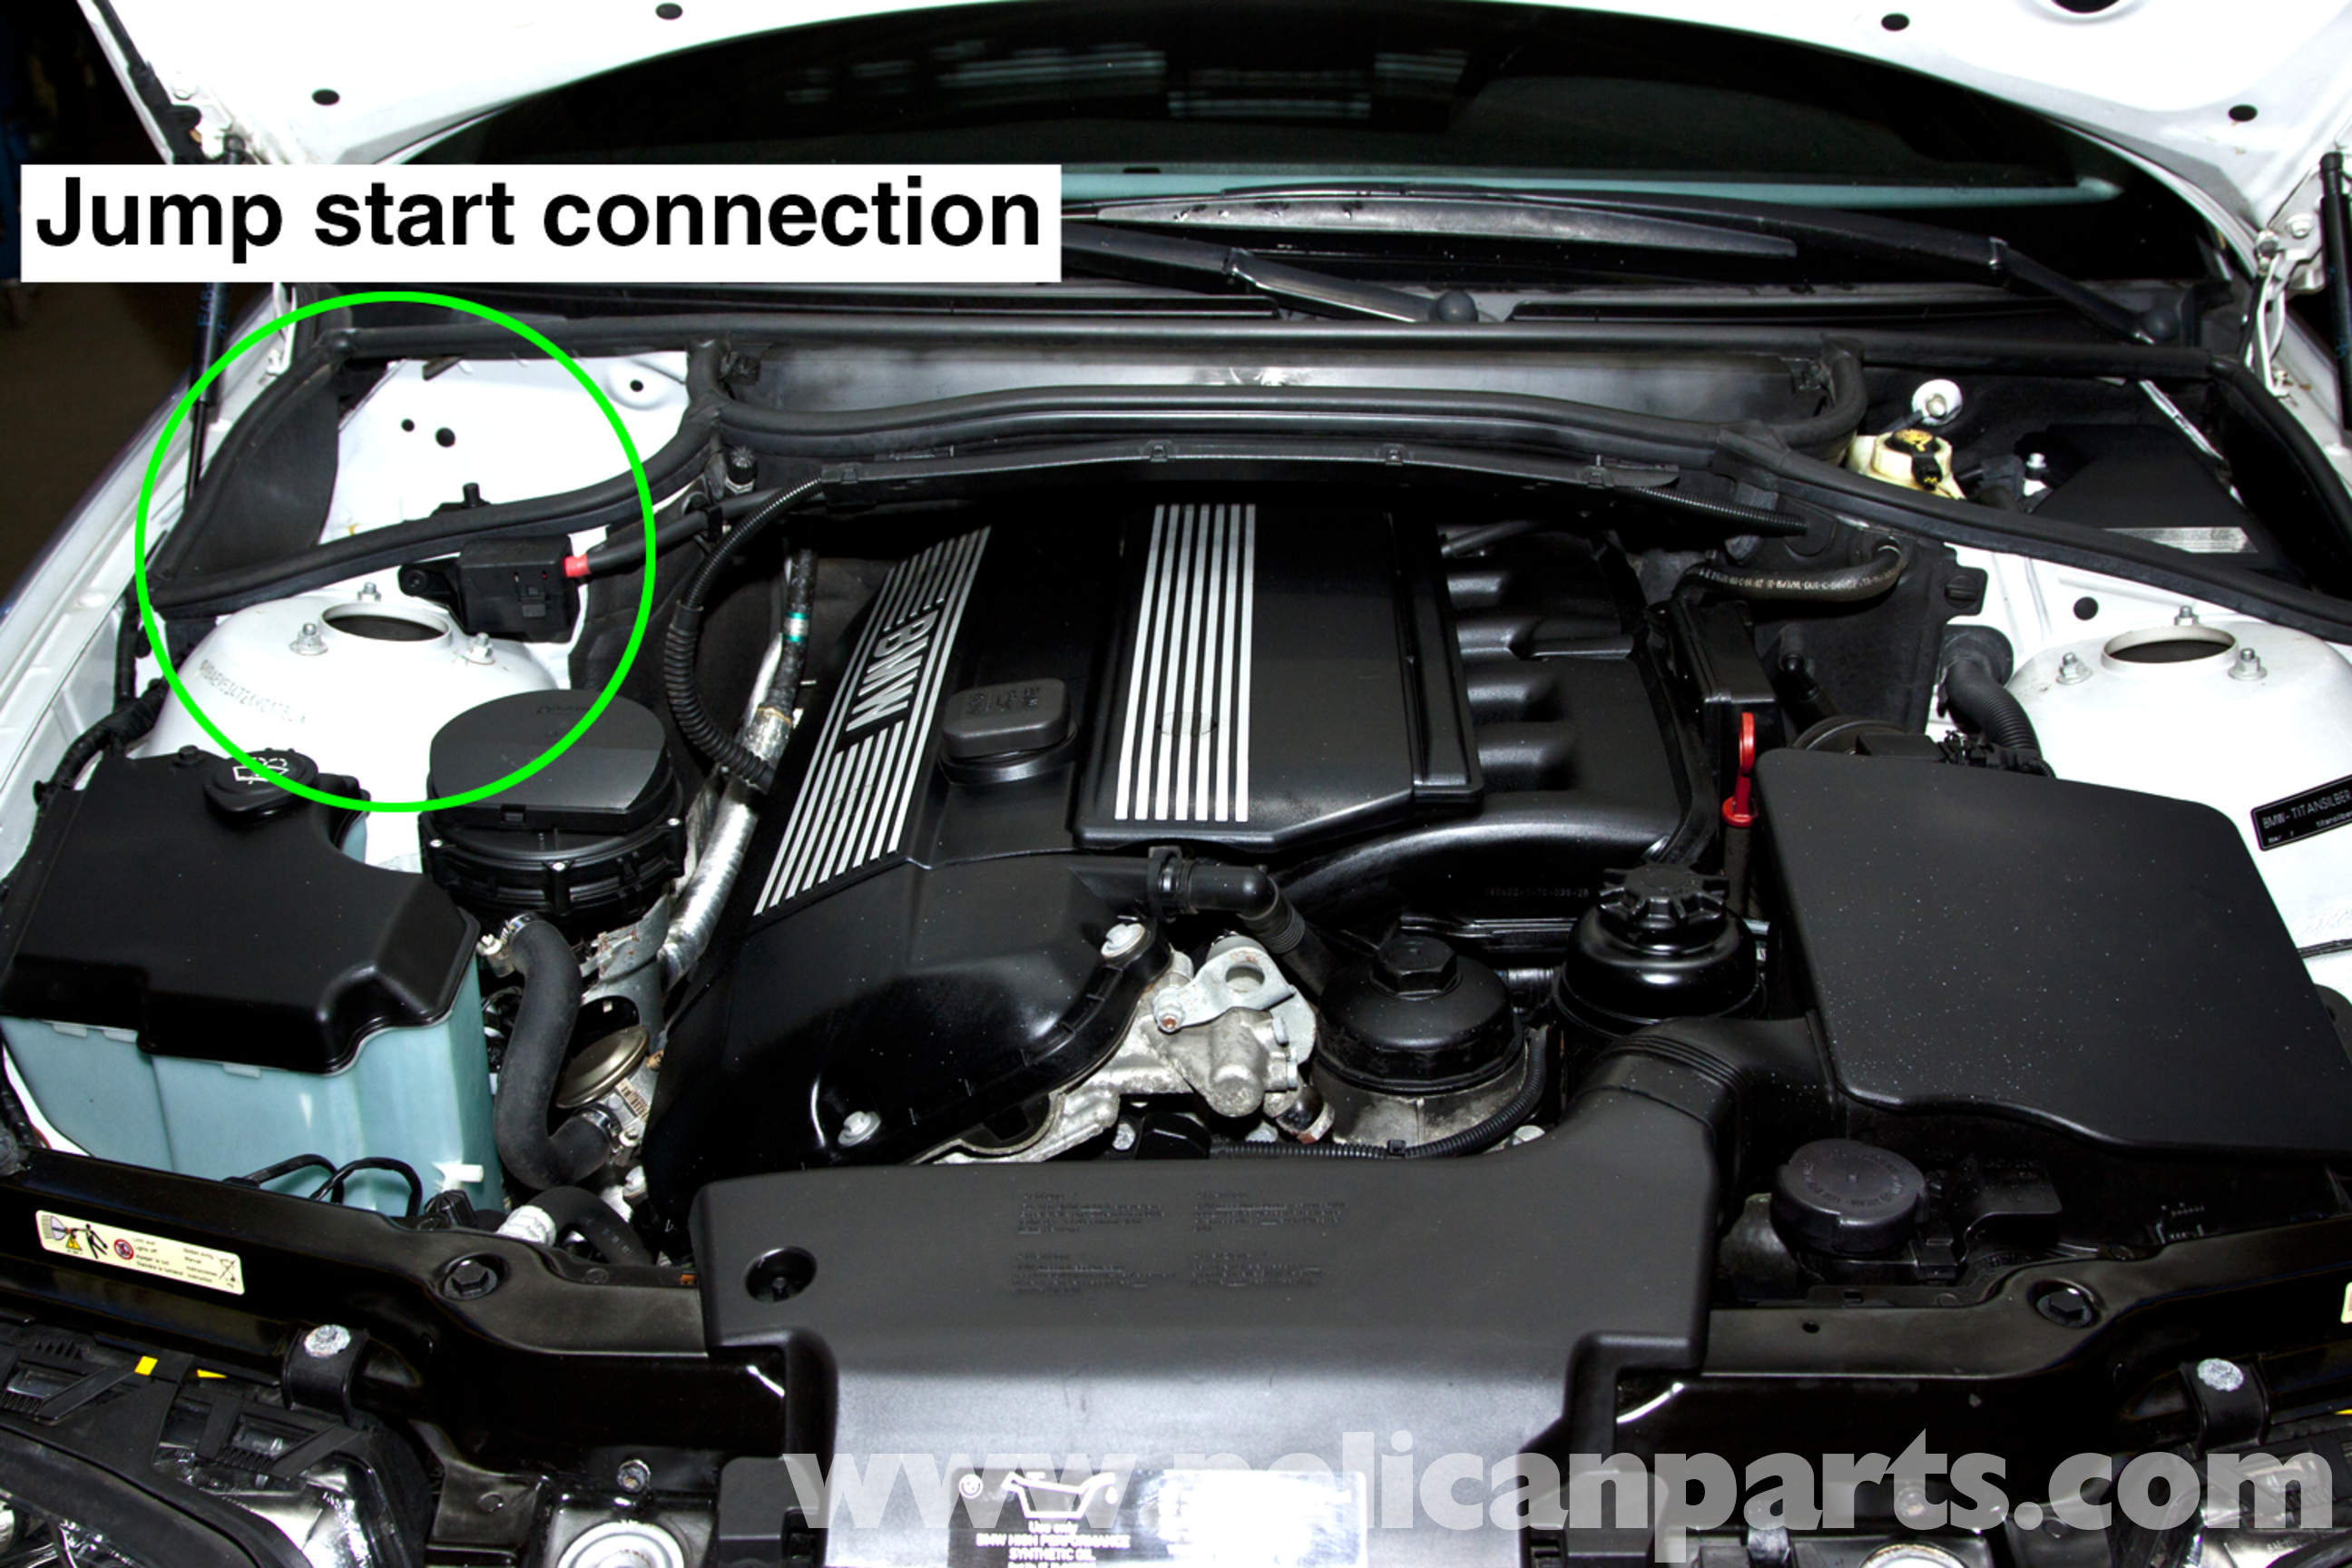 BMW E Battery Replacement And Connection Notes BMW I - Bmw 3 series battery